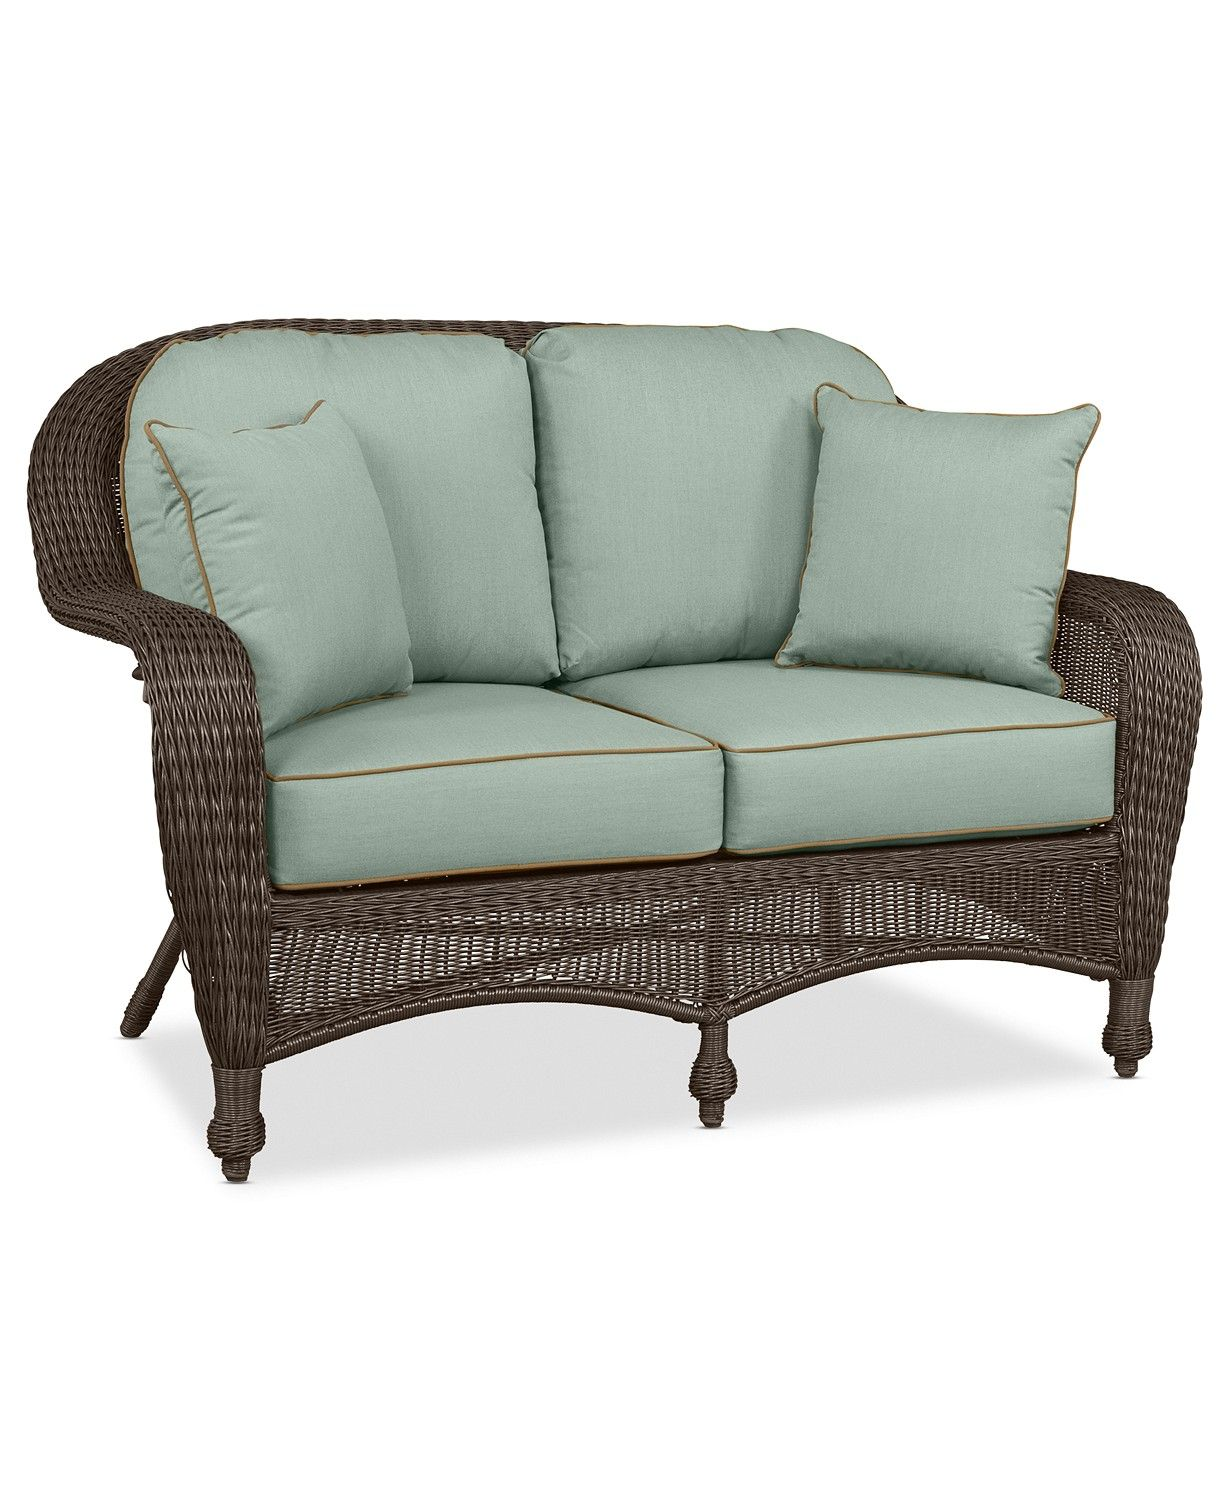 wicker patio loveseat on furniture monterey wicker outdoor loveseat with custom sunbrella created for macy s reviews furniture macy s outdoor loveseat love seat furniture pinterest